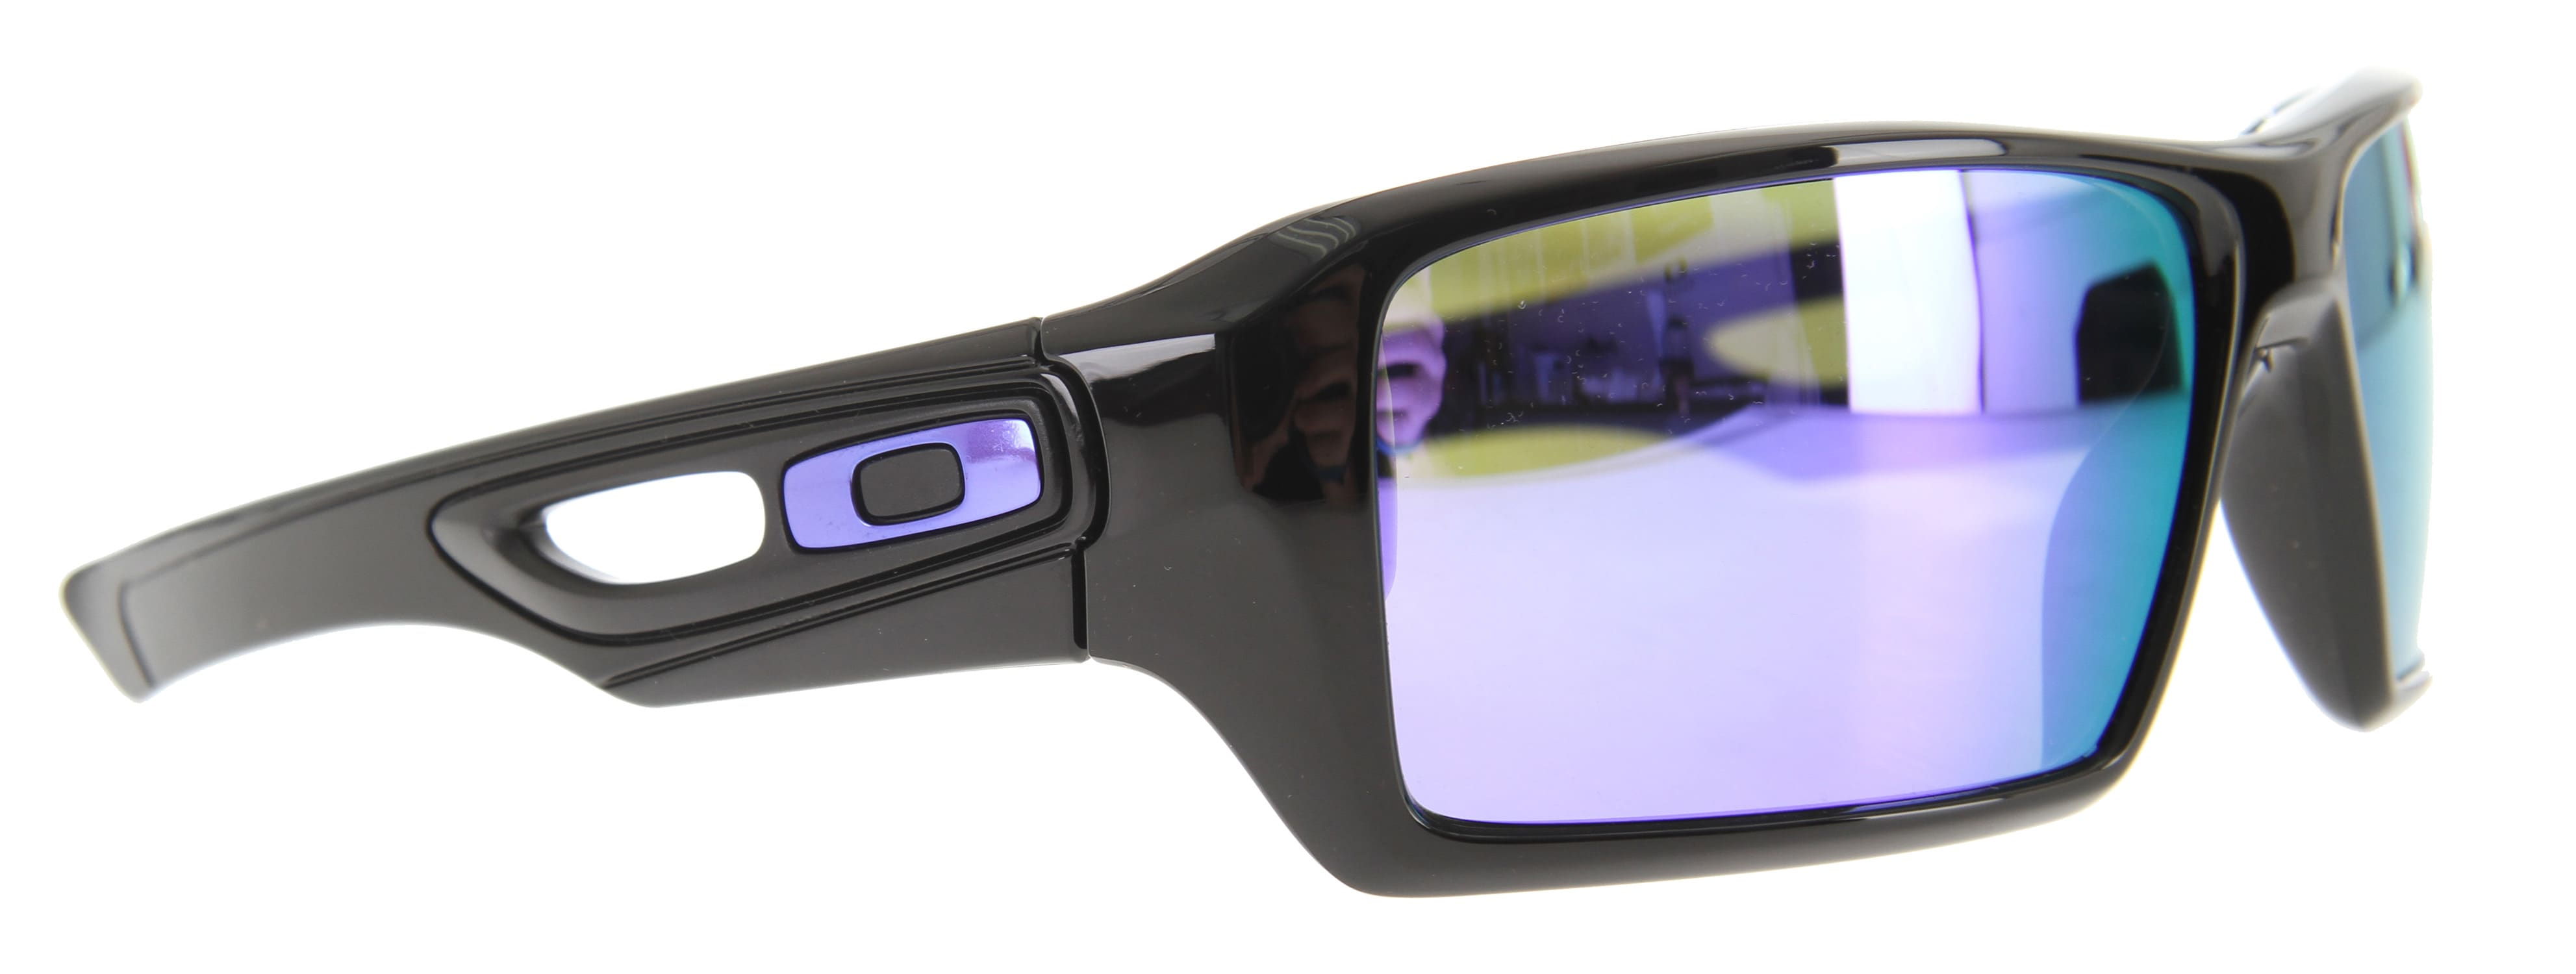 4e4f2cdbf4 Oakley Eyepatch 2 Sunglasses - thumbnail 1